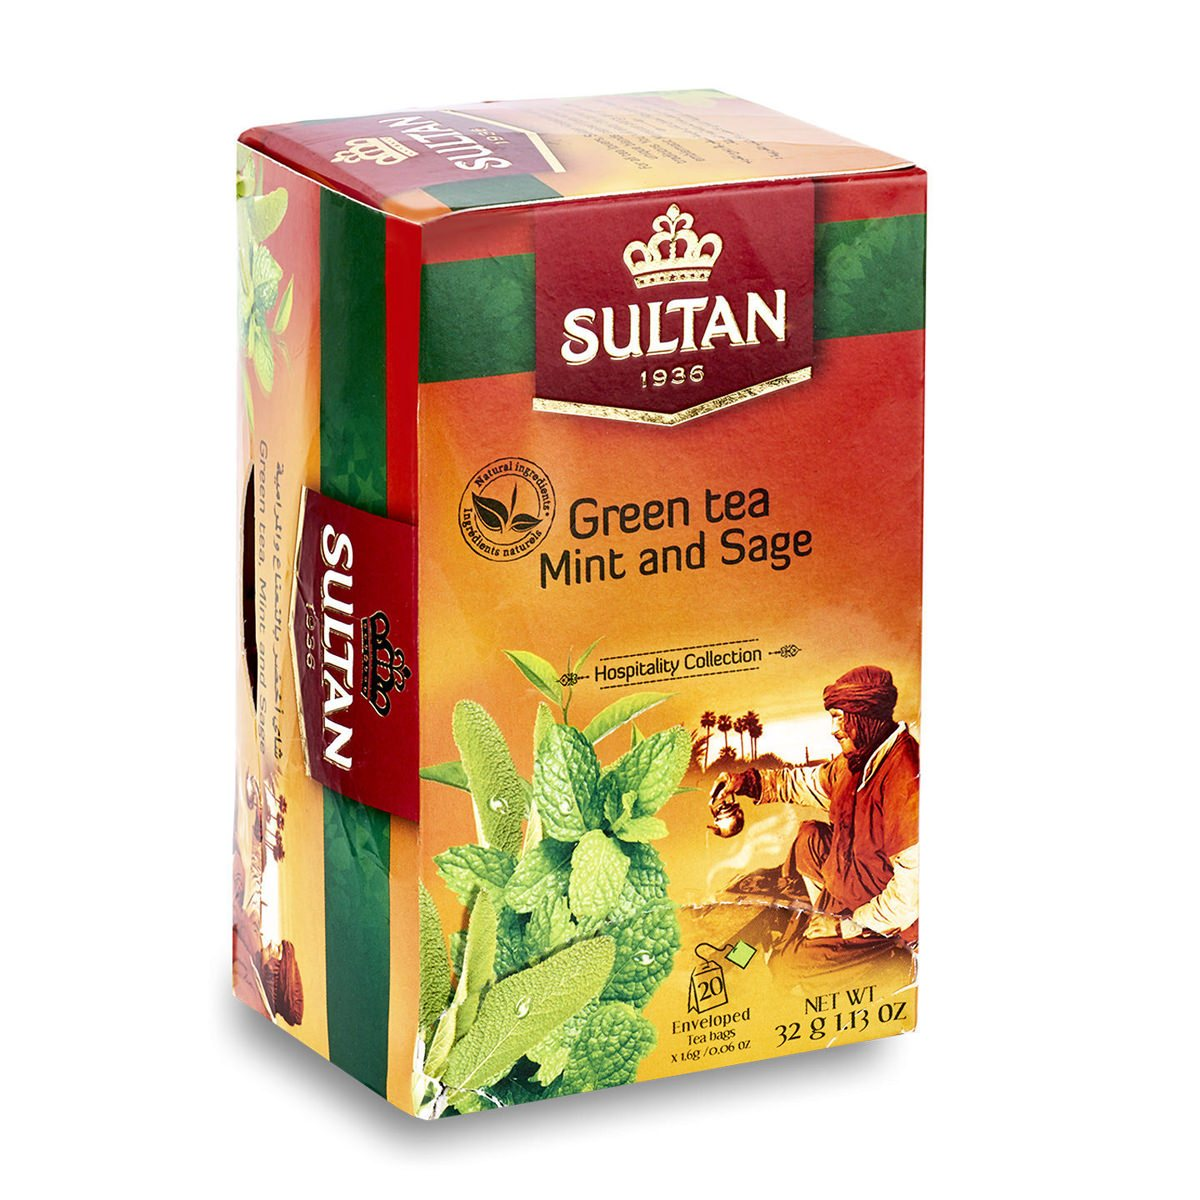 Mint and Sage Green Tea - 20 Tea bags - Bulk Buy